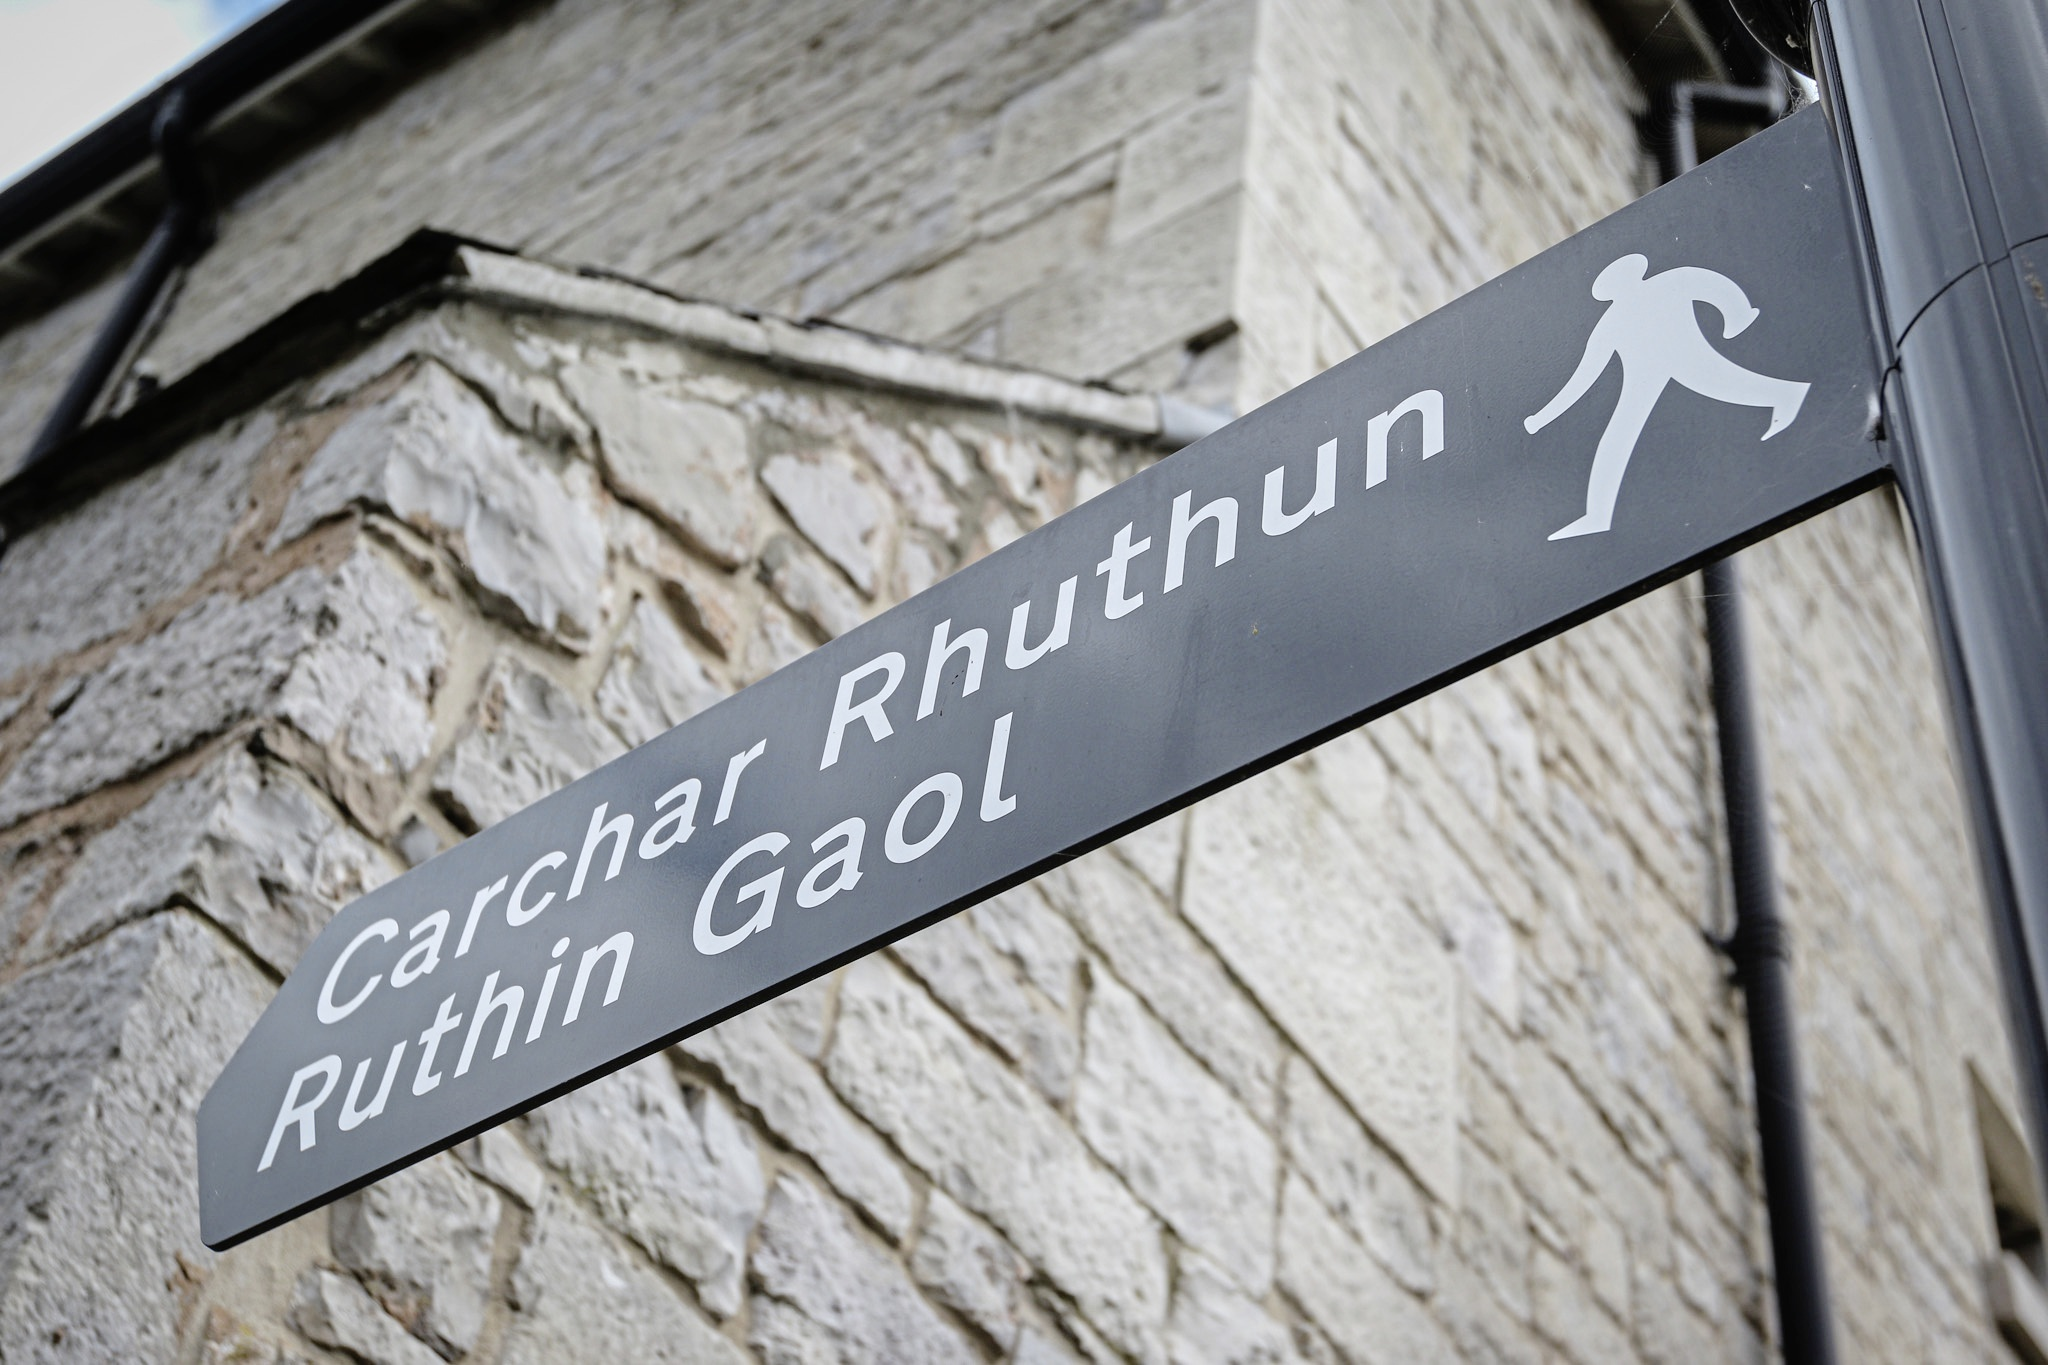 Ruthin Gaol is one of the attractions on the new tourism route